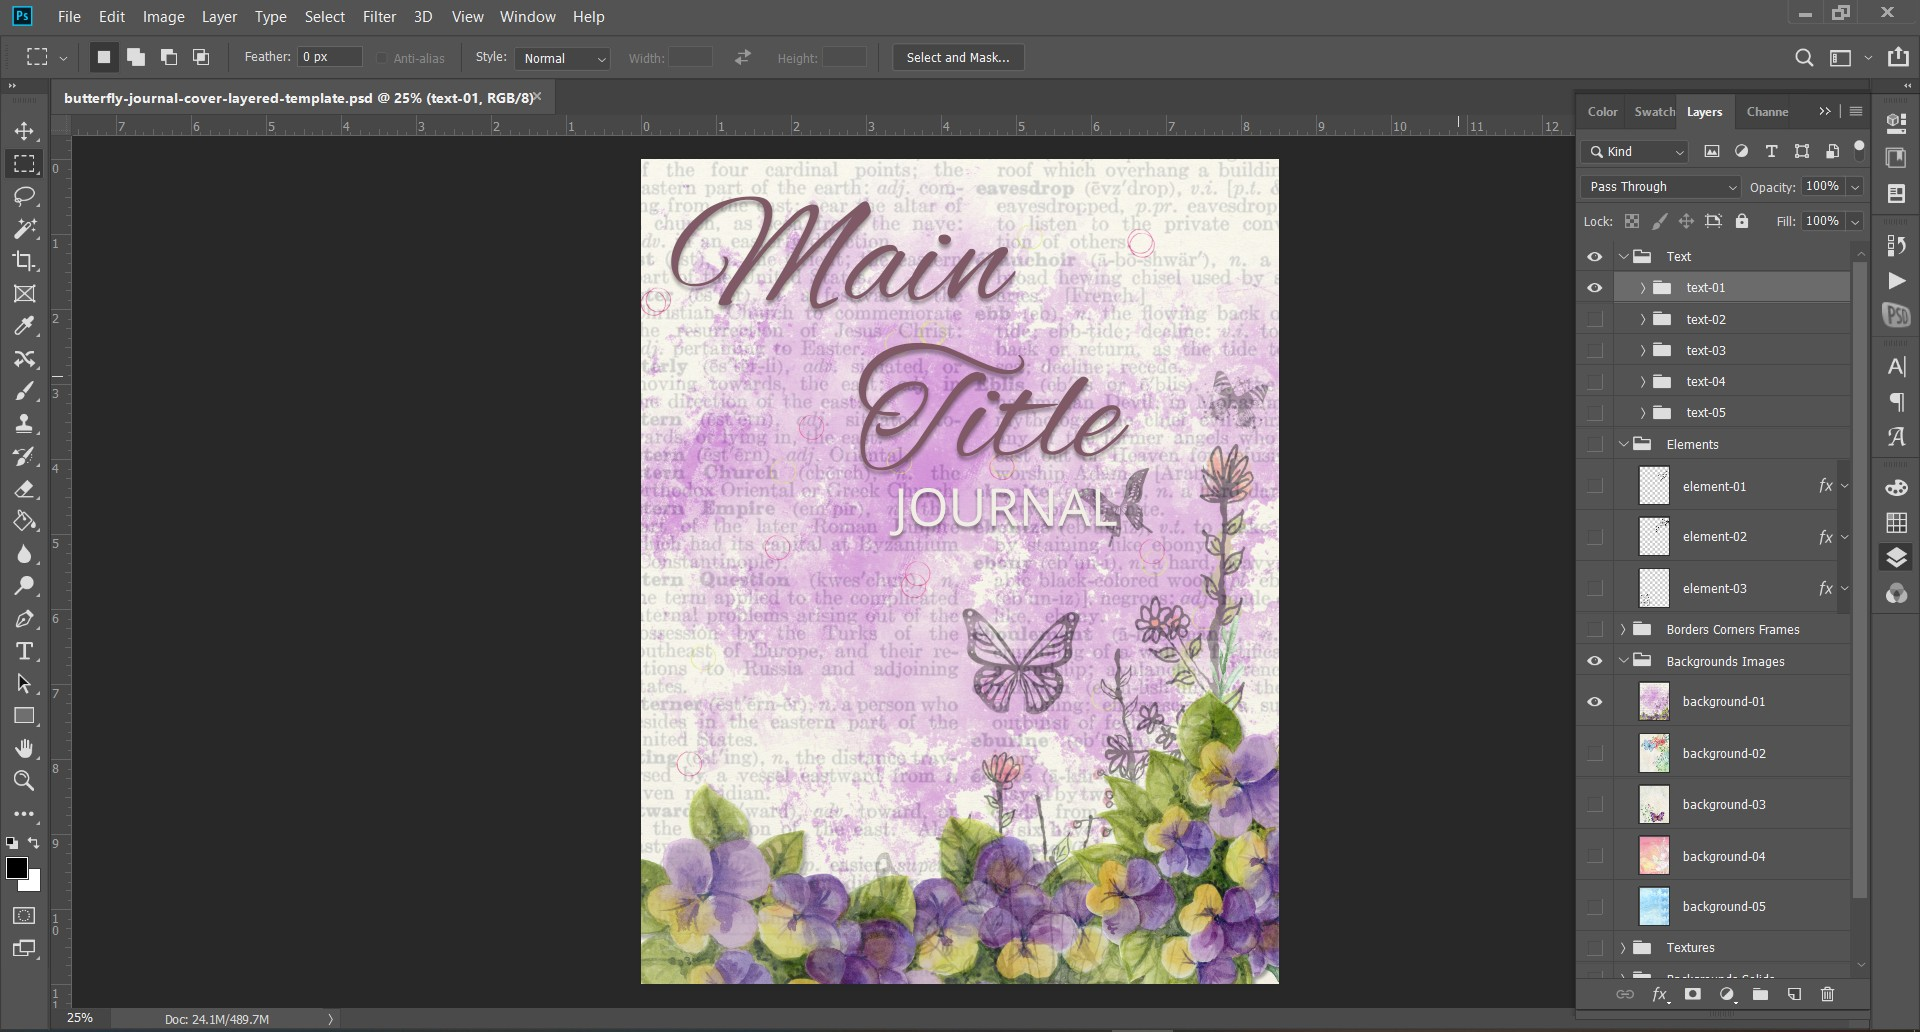 butterfly-journal-cover-template